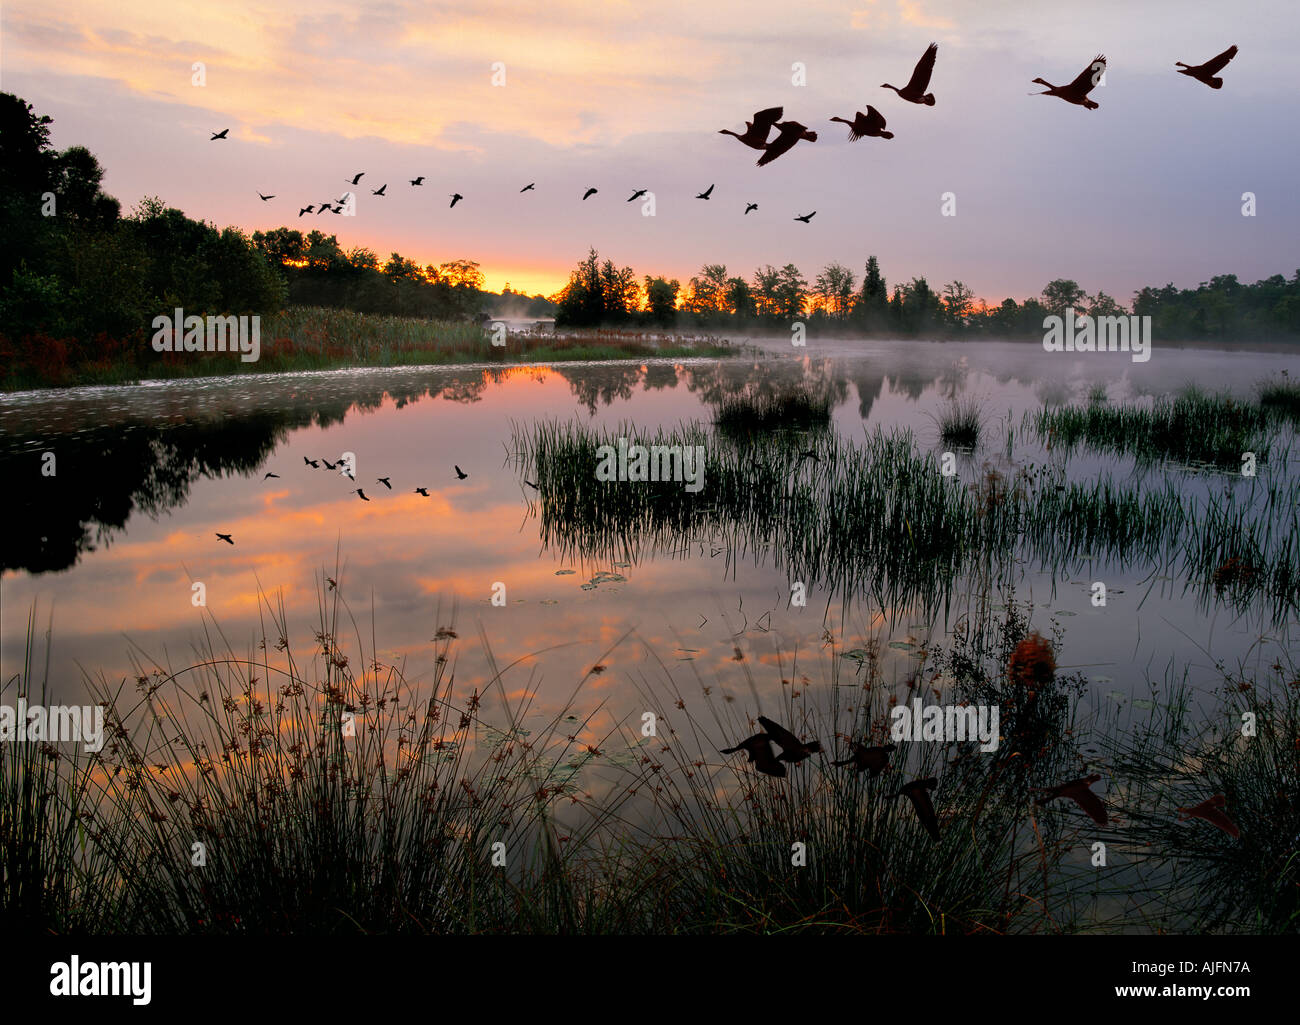 Canada Geese Migration Southern New Jersey - Stock Image